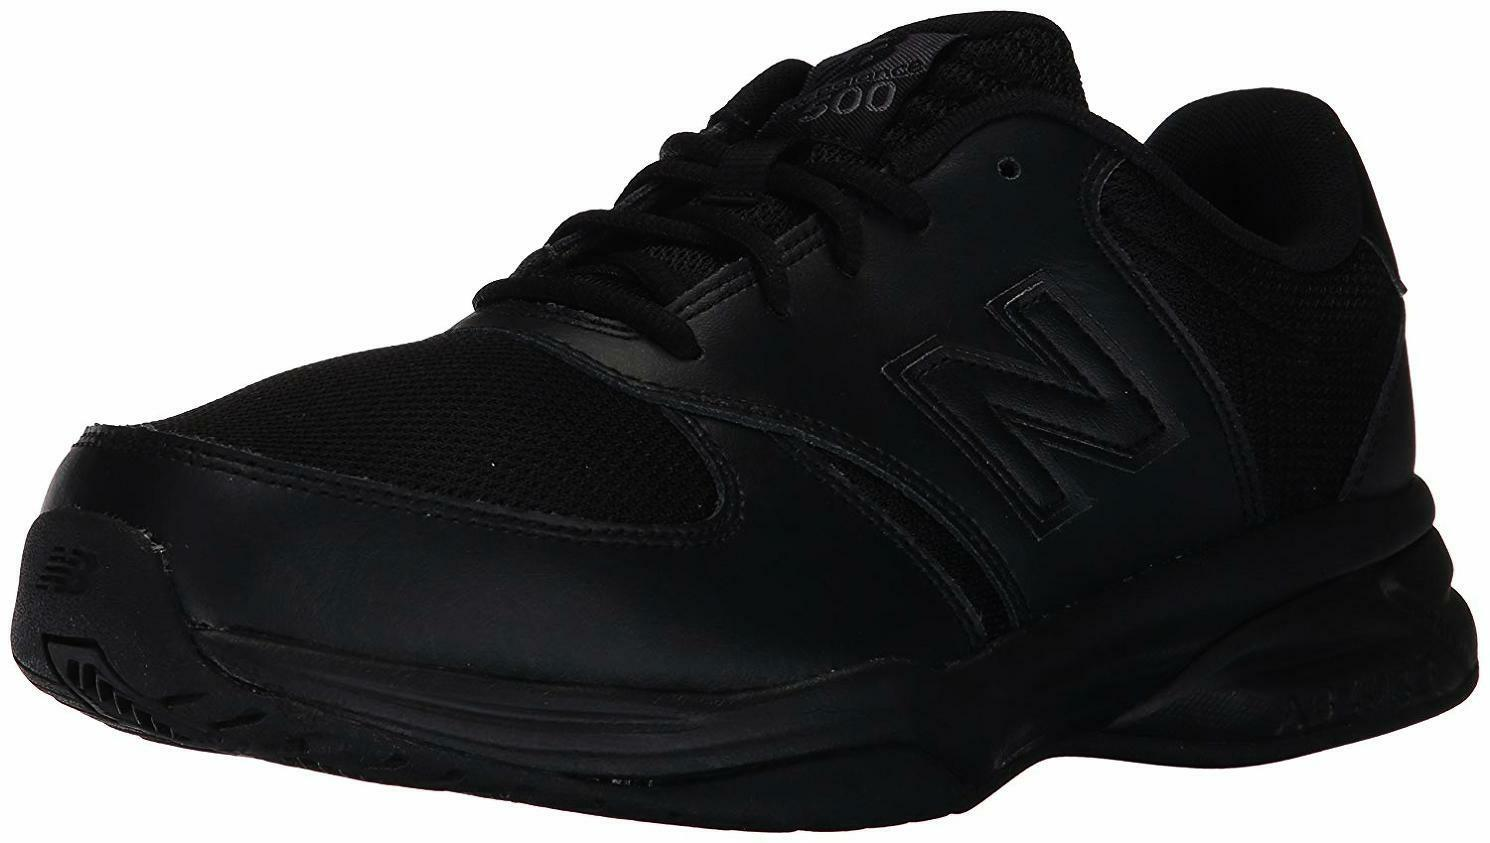 New Balance Homme 500V1 Cuir Maille Training chaussures-Choisir Taille couleur